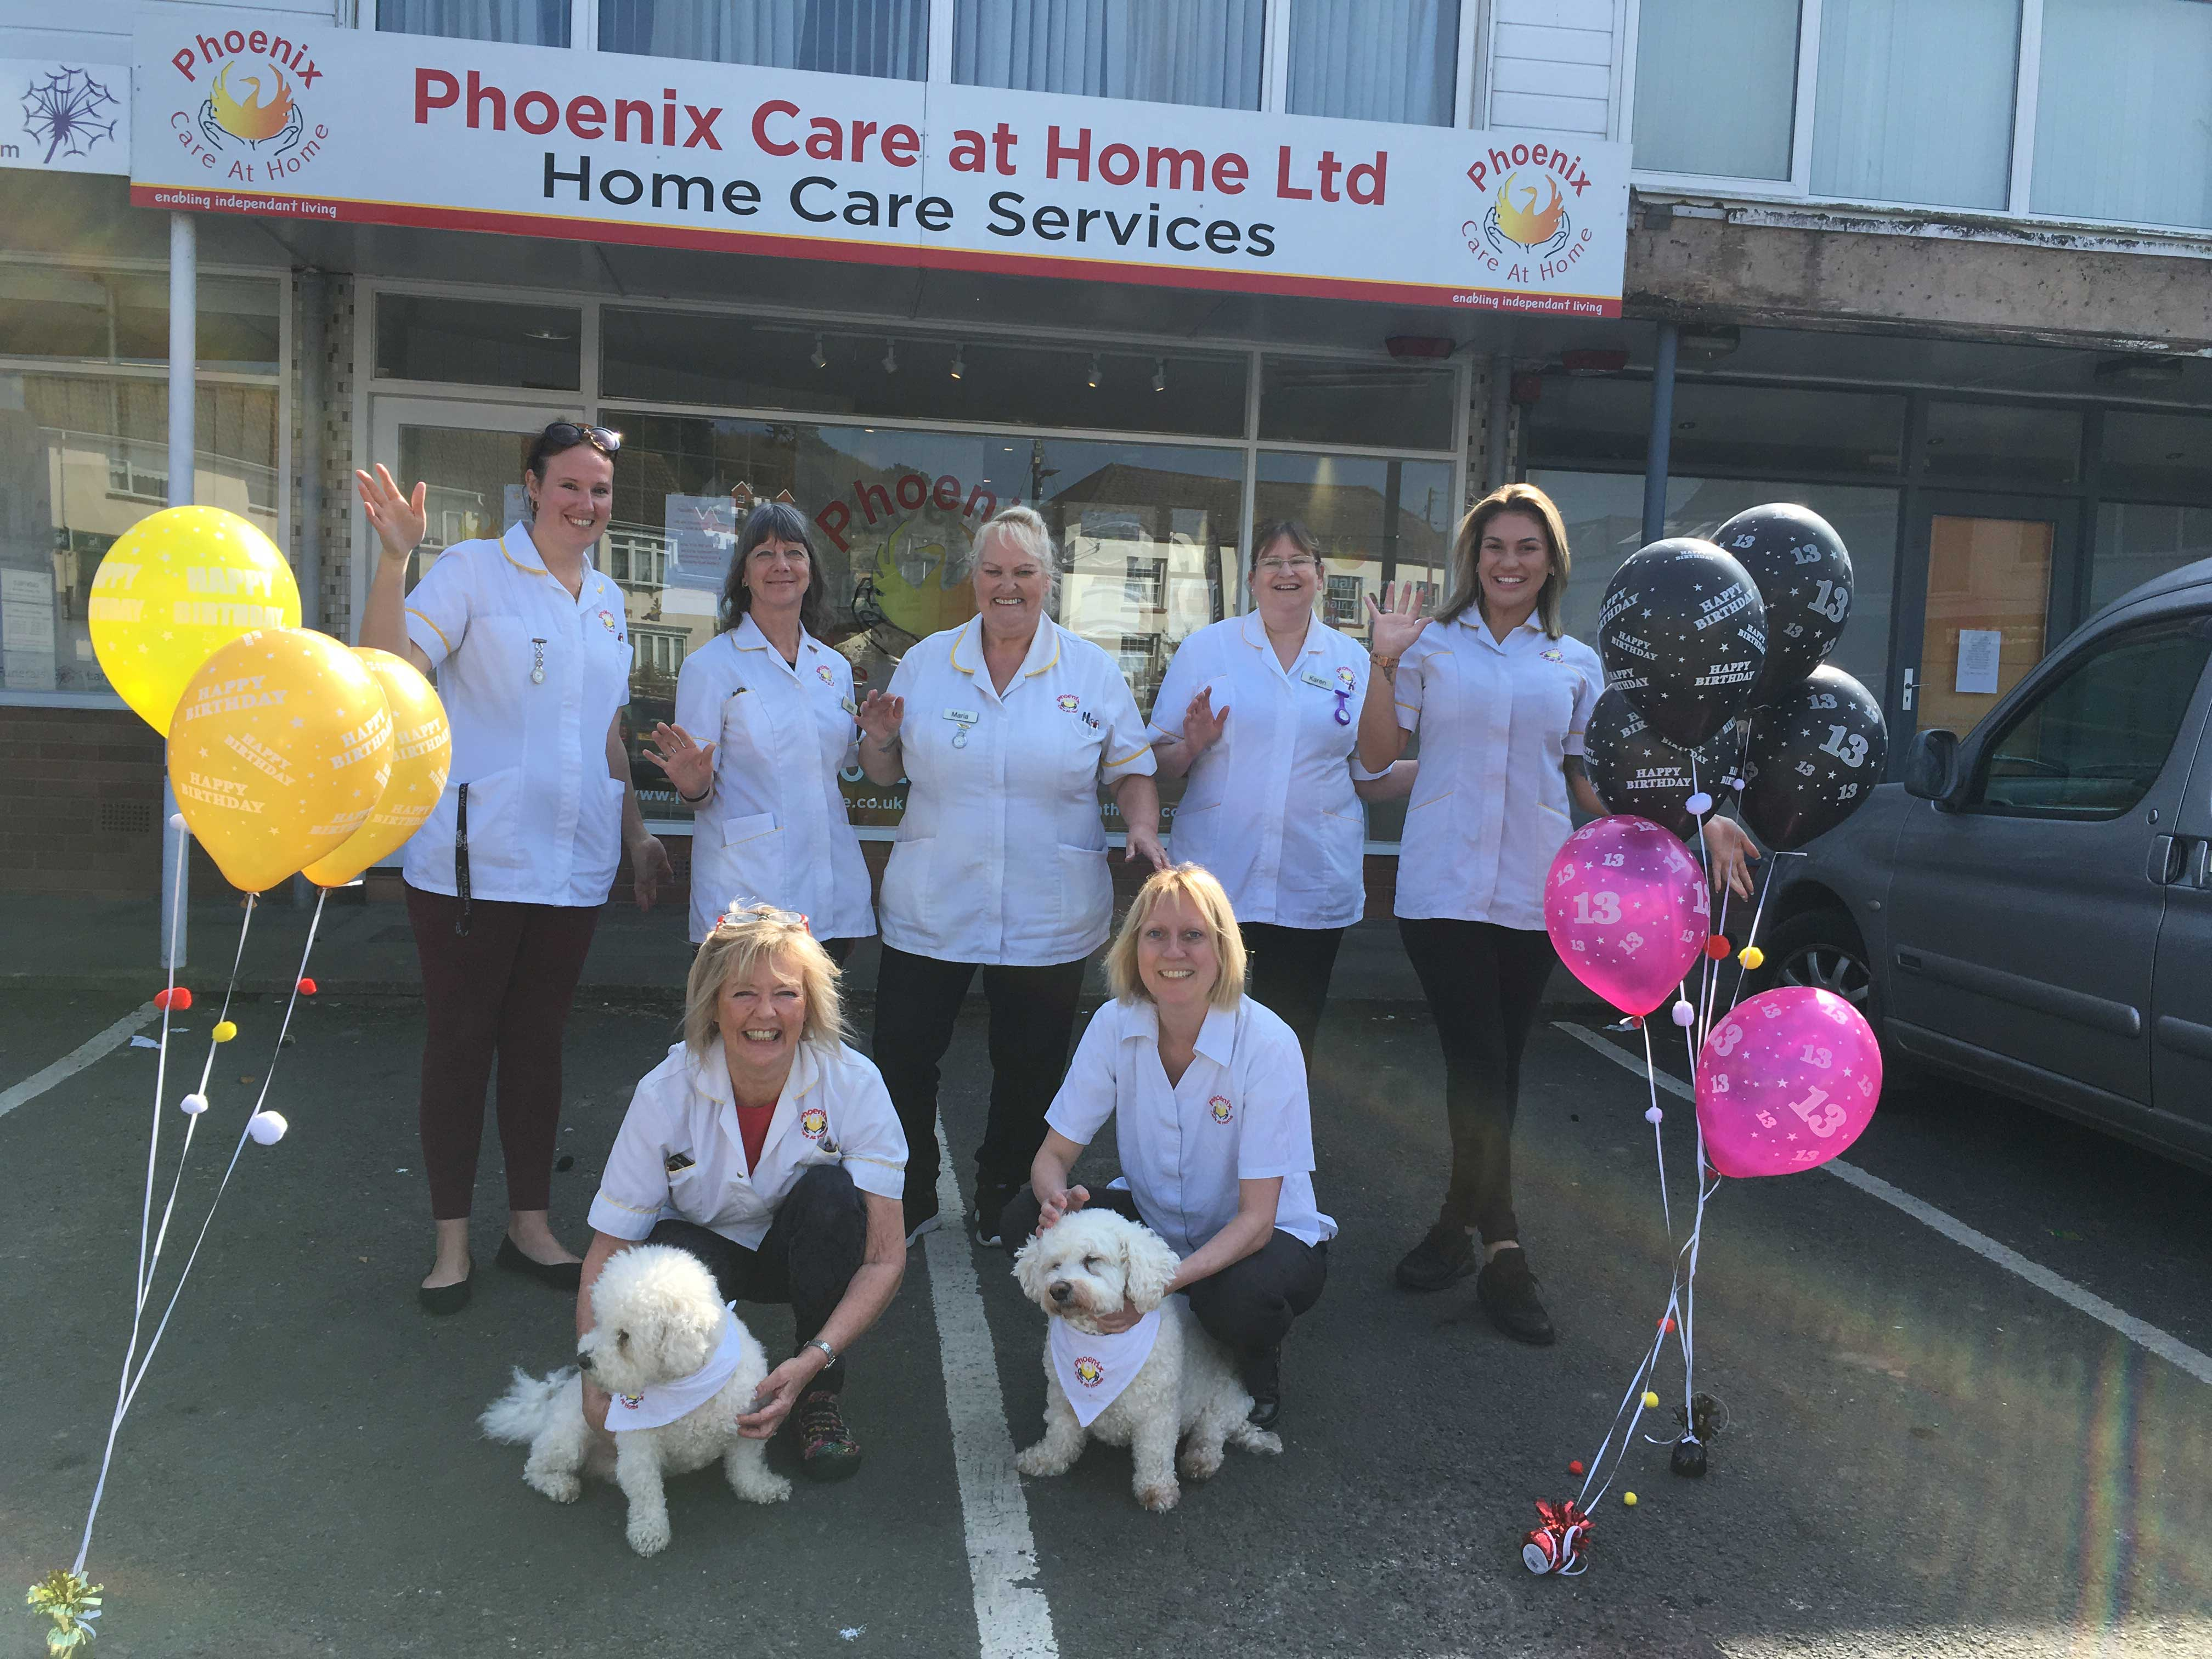 Phoenix Care At Home Celebrating 13 Years in Business